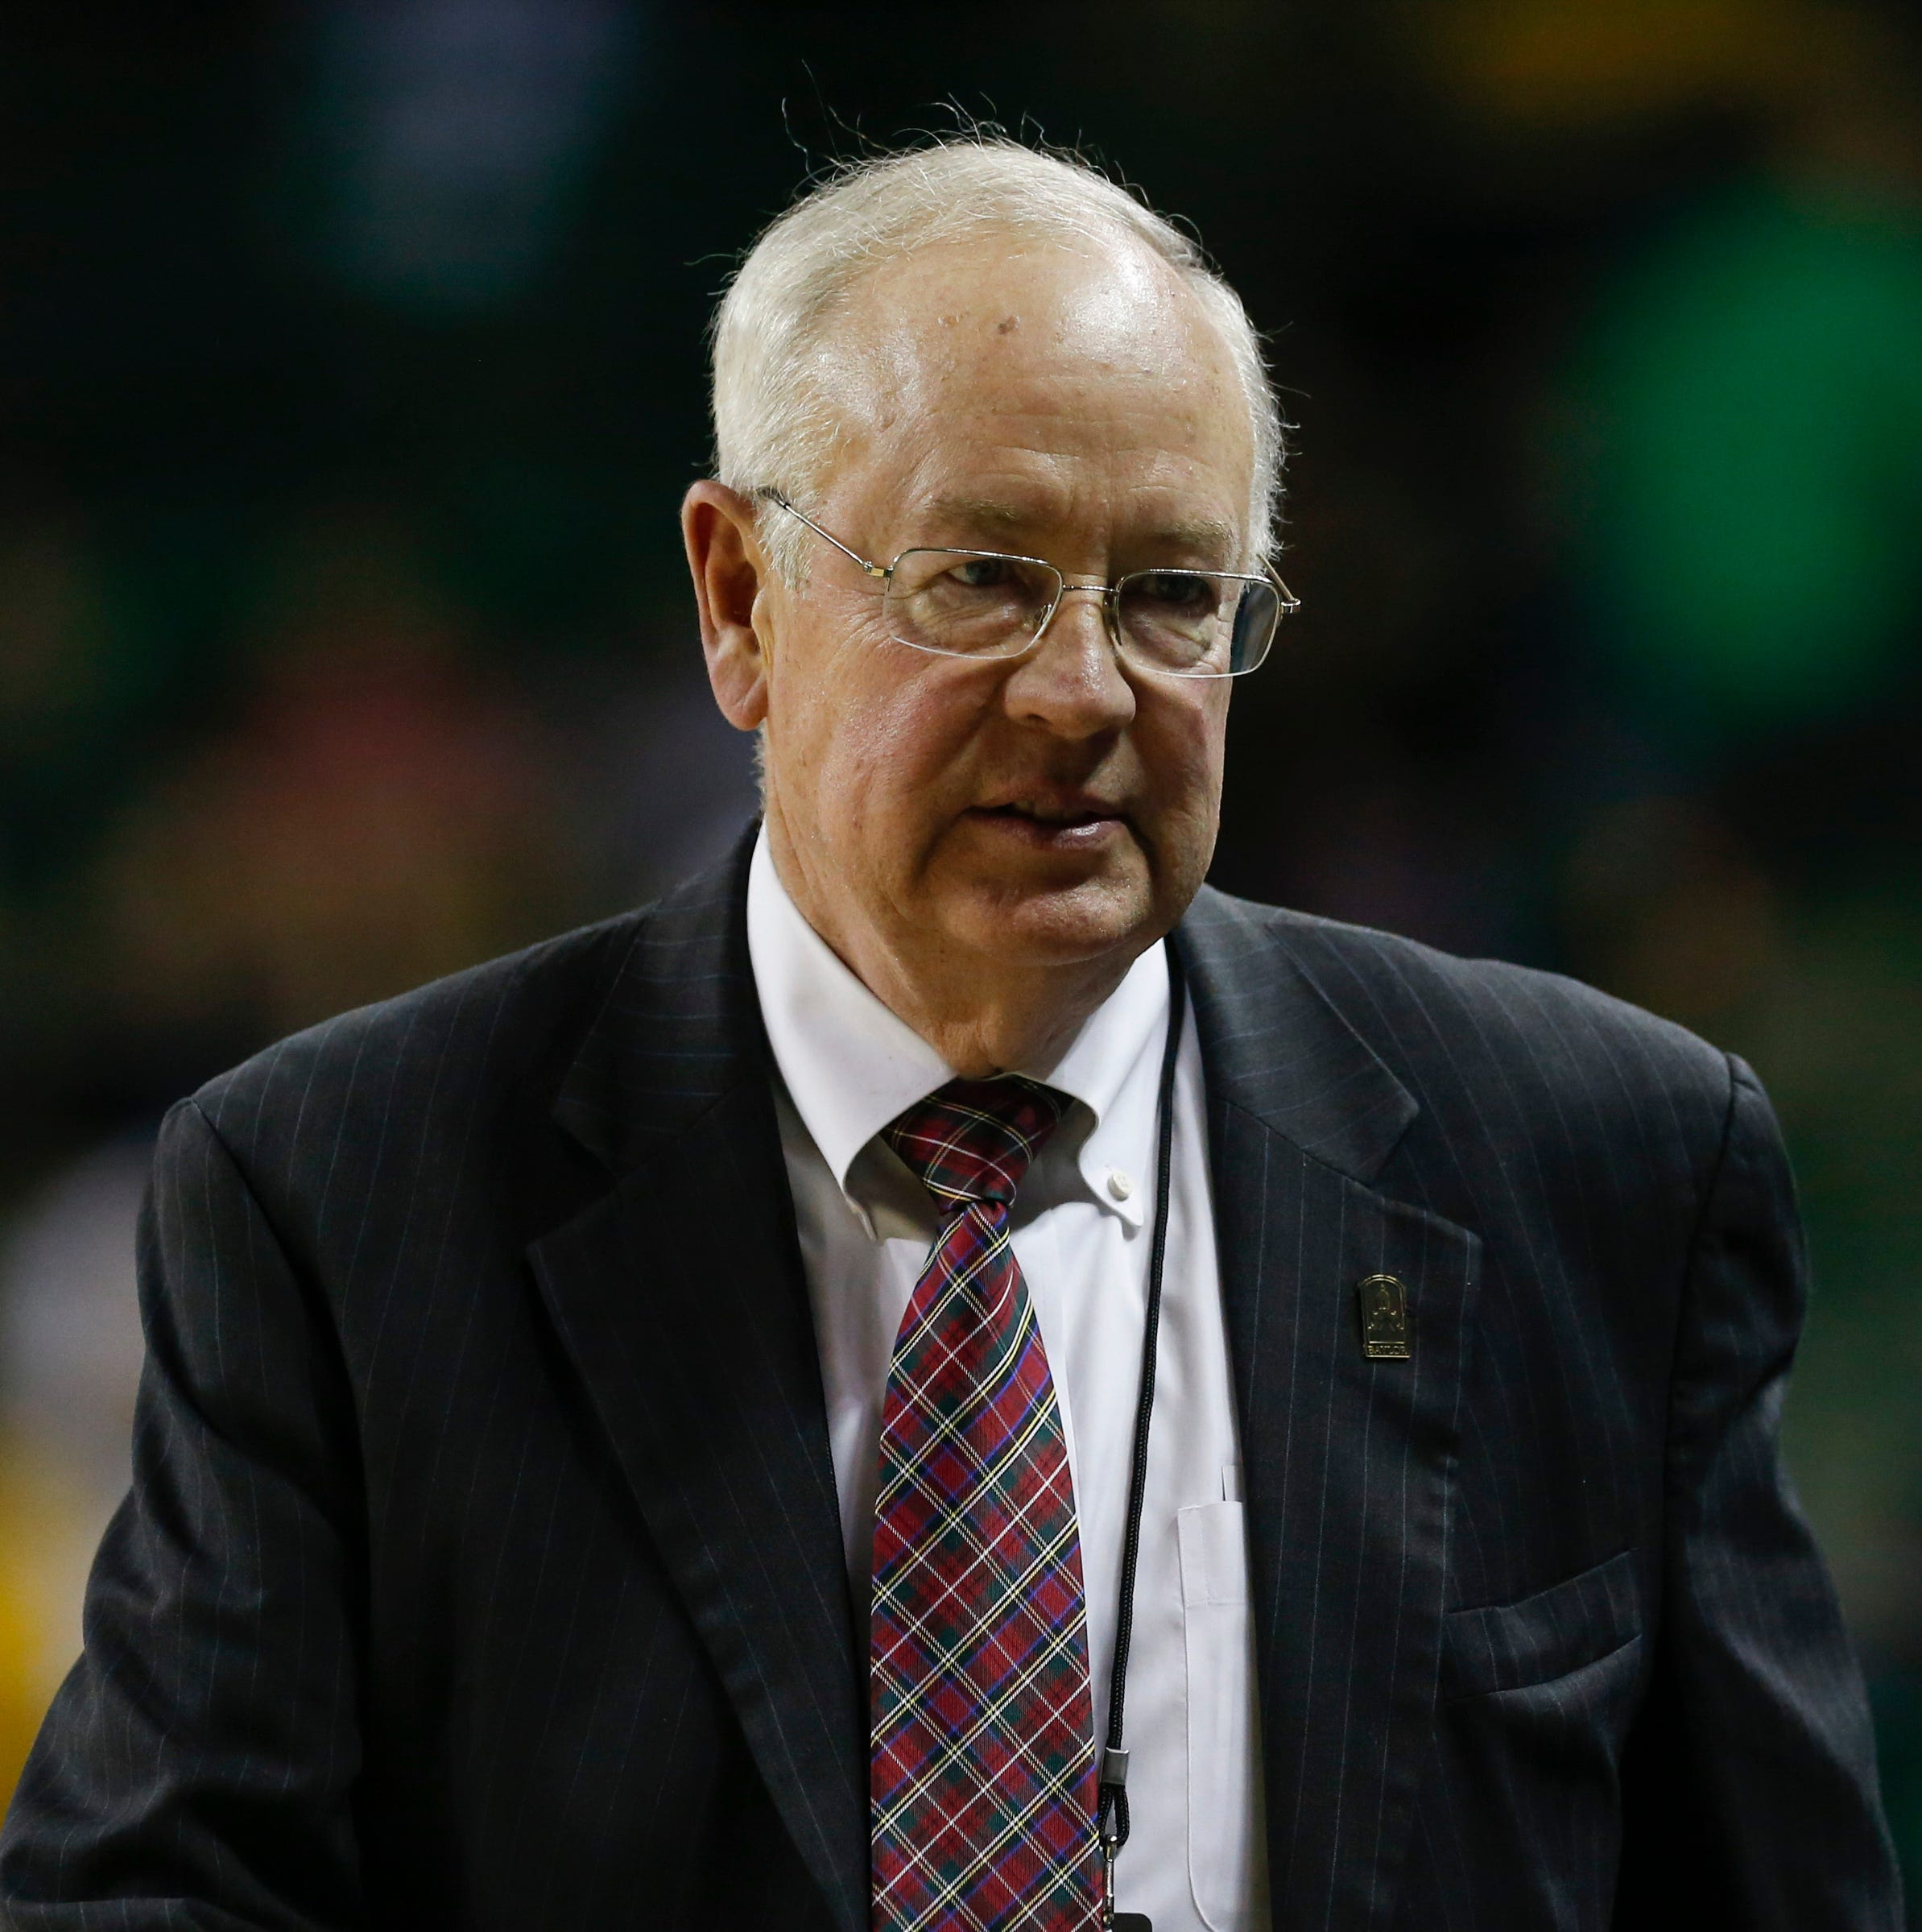 Former judge Ken Starr at Baylor University's Ferrell Center in Waco, Texas, on Dec 9, 2014.